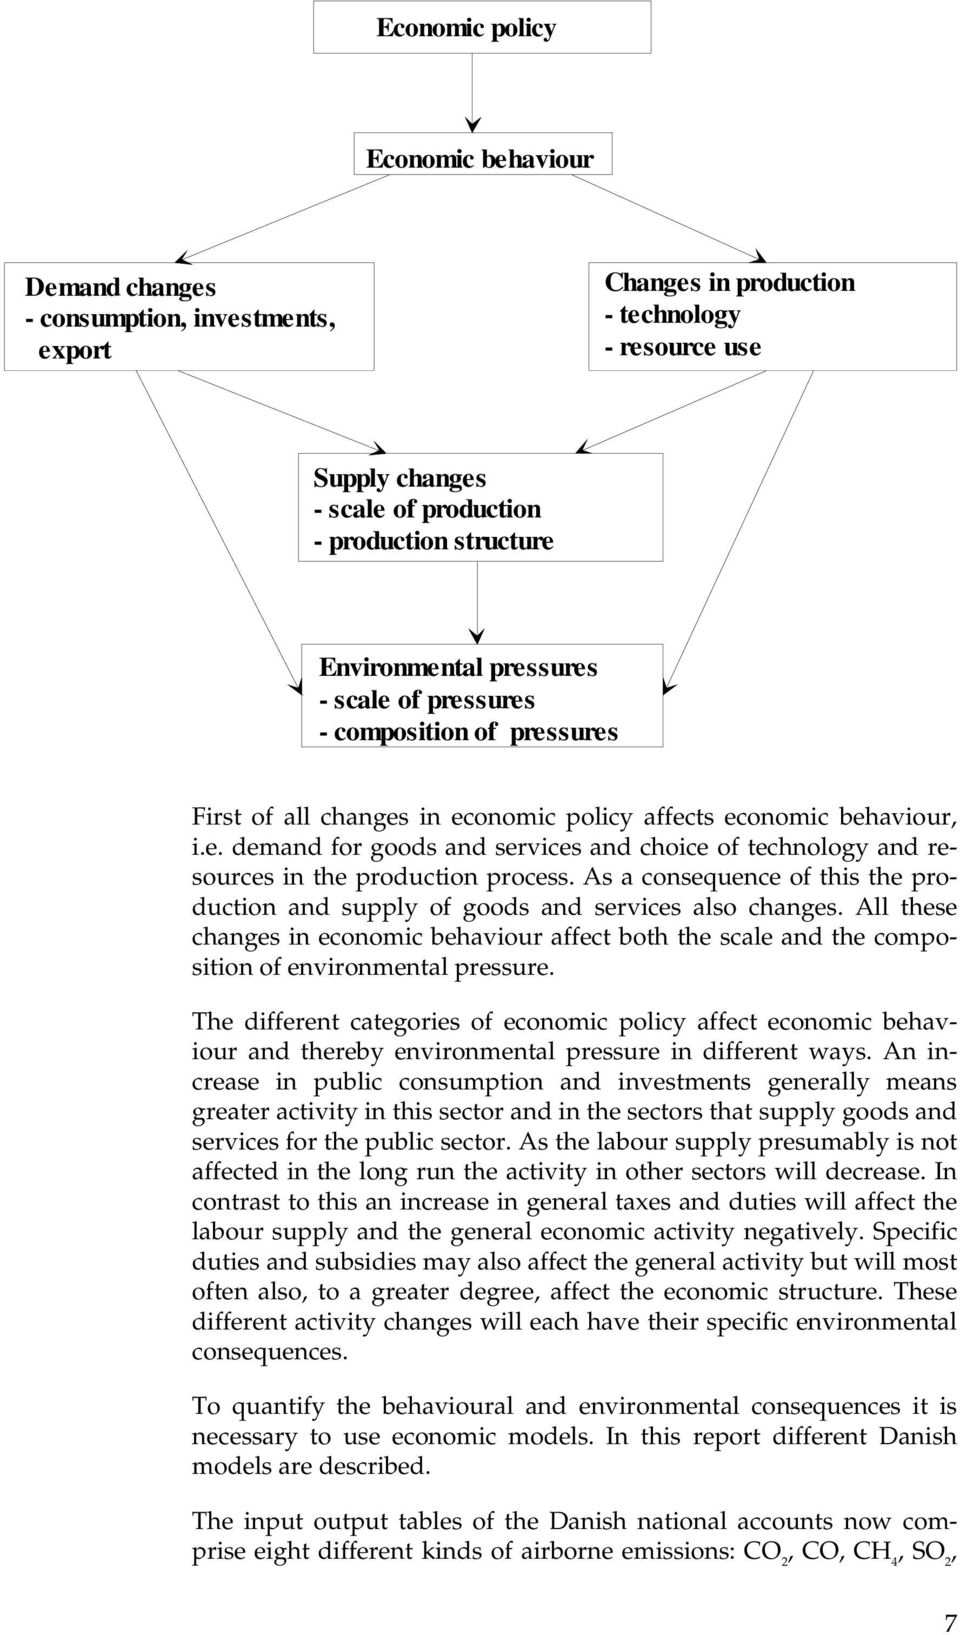 pressures - composition - sammensætning of pressures First of all changes in economic policy affects economic behaviour, i.e. demand for goods and services and choice of technology and resources in the production process.